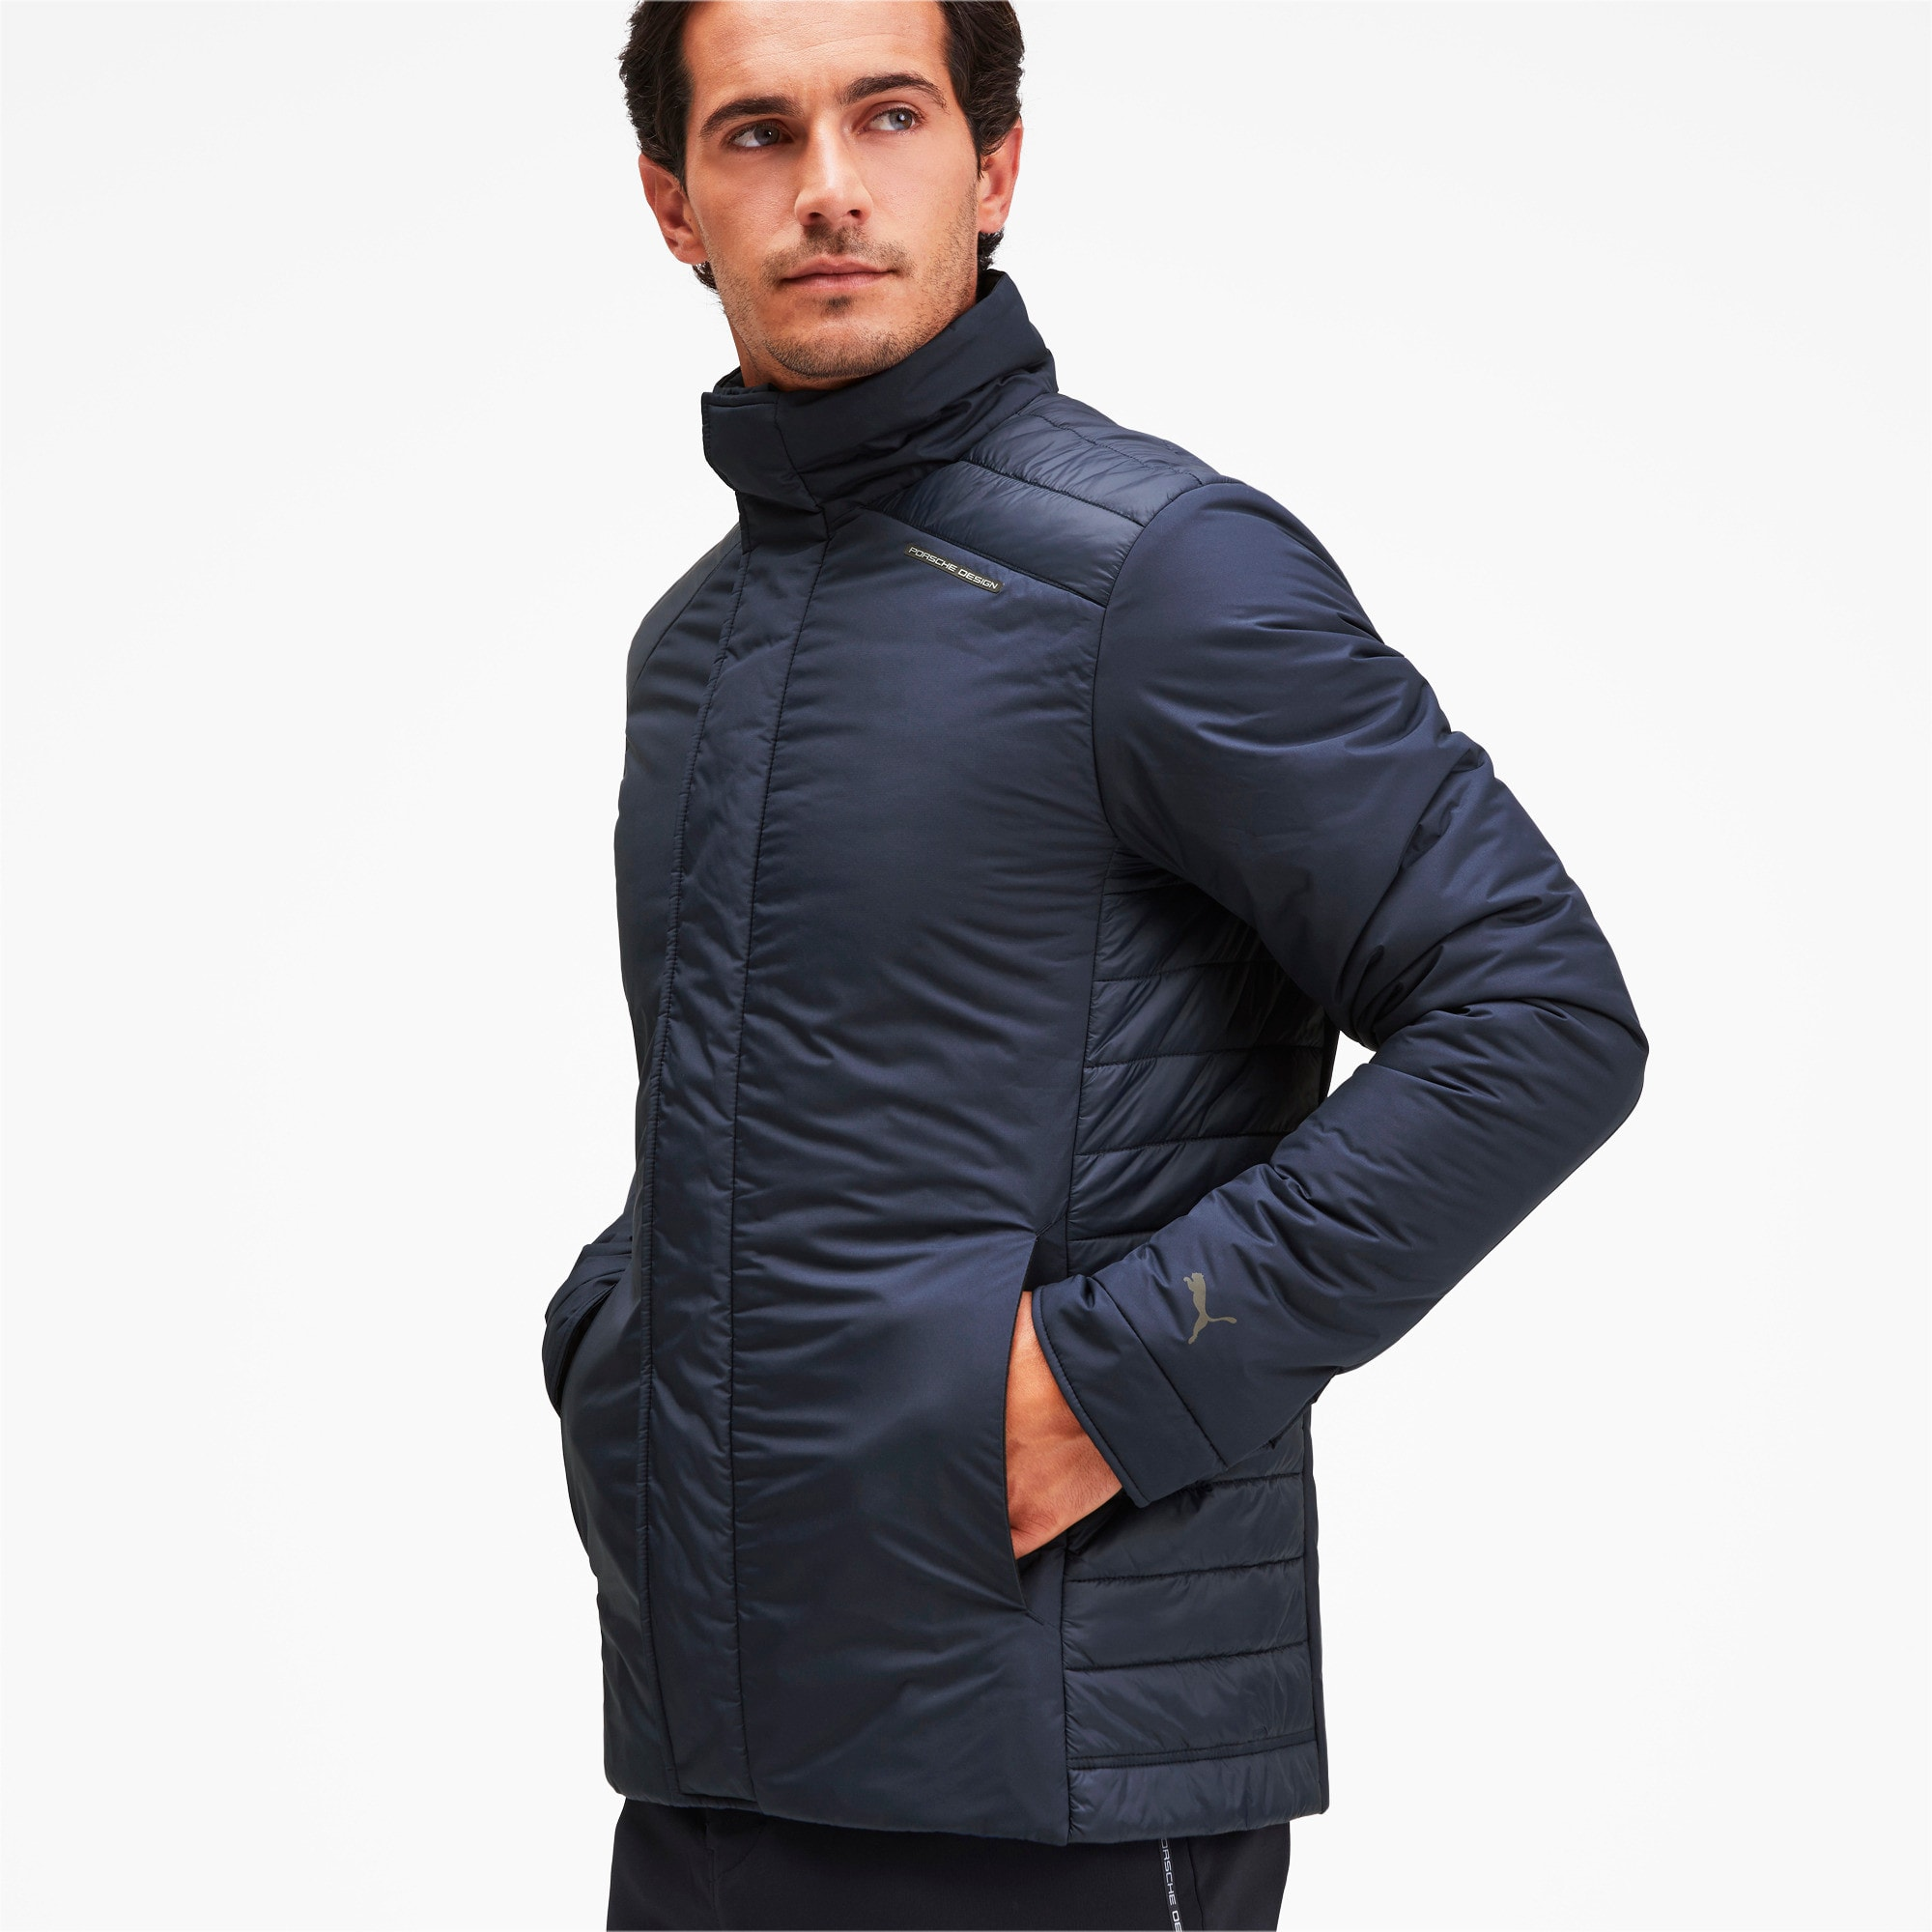 Thumbnail 8 of Porsche Design Men's Racing Jacket, Navy Blazer, medium